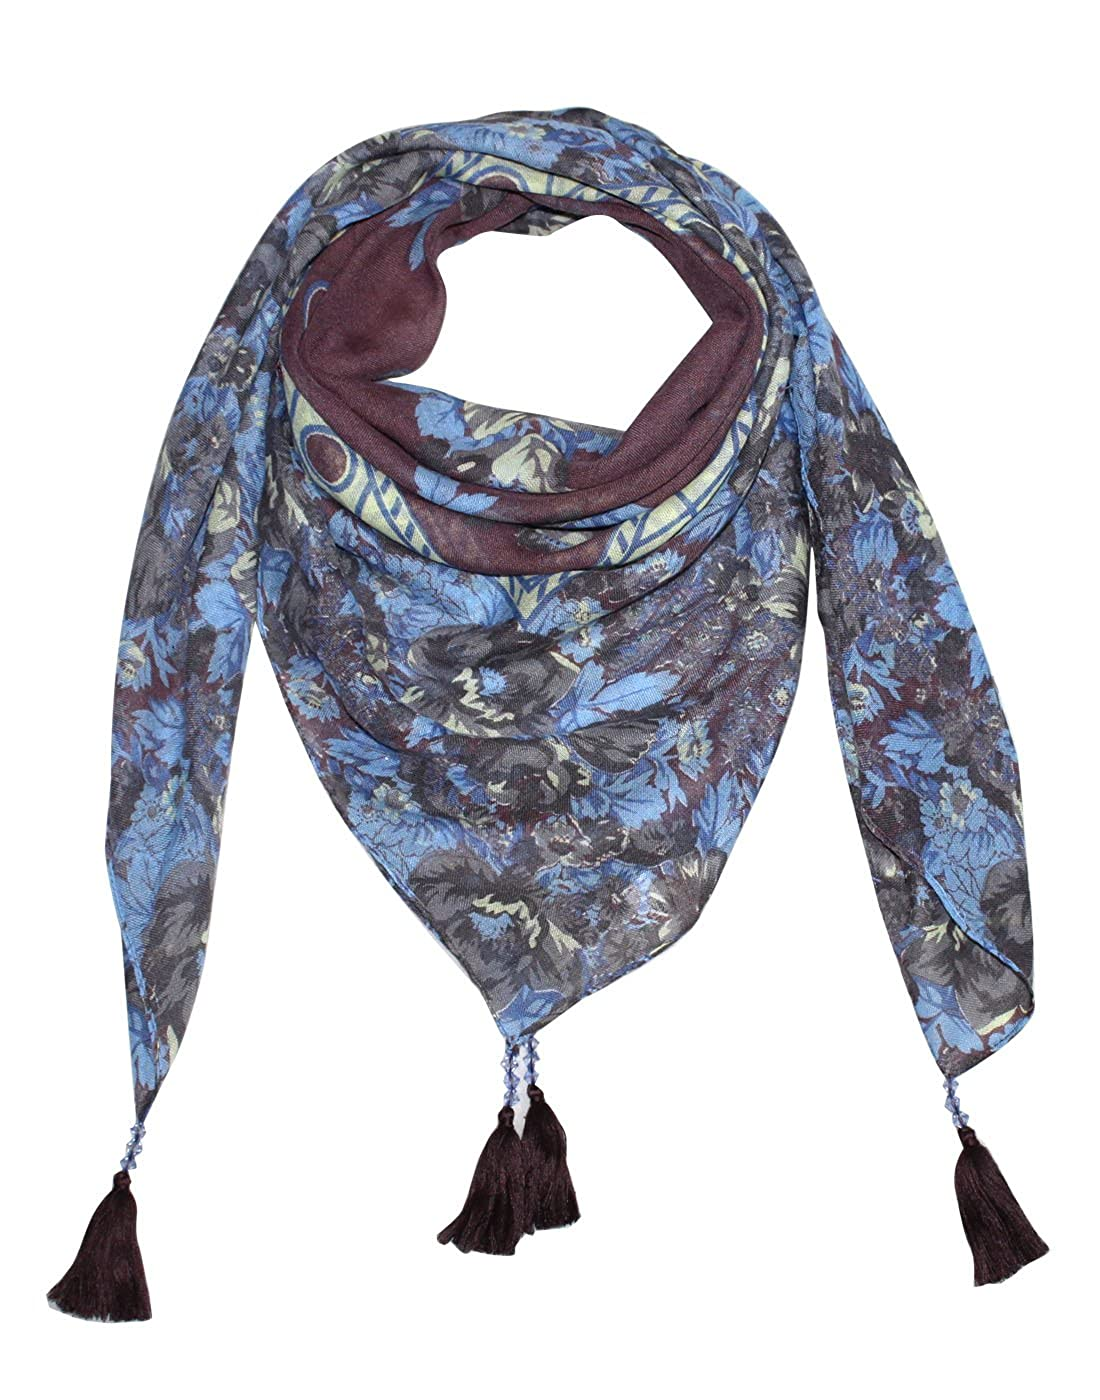 d3c2e6703468c Uso Uno stylish printed grey square scarf , stole, dupatta in fine  polyester fabric for women.: Amazon.in: Clothing & Accessories